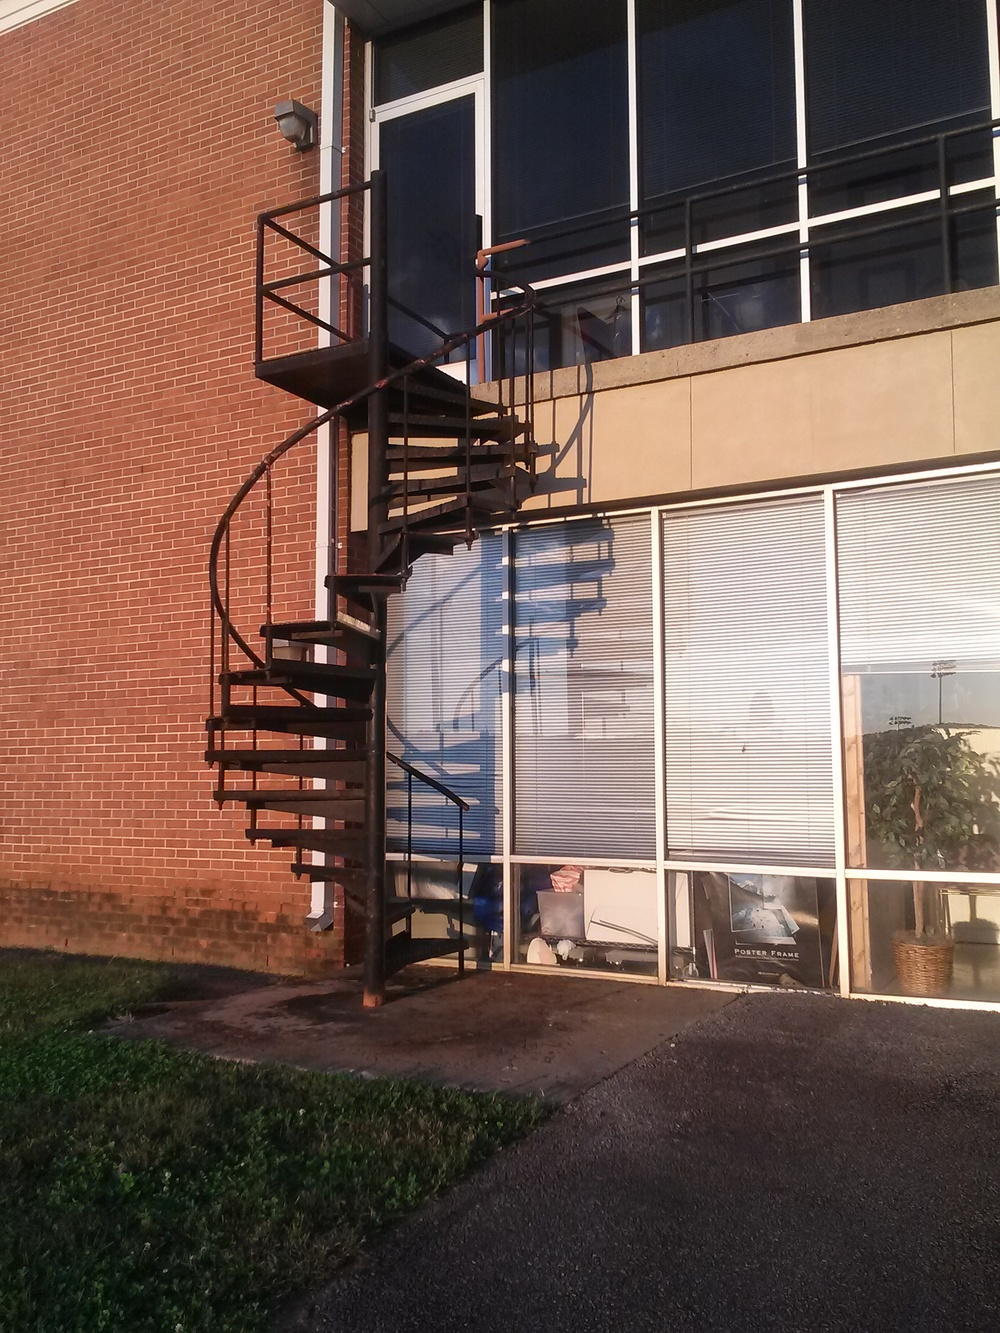 On the back side of the Foster Education building there are spiral stairs that lead all the way up to the second floor. Shortcut!